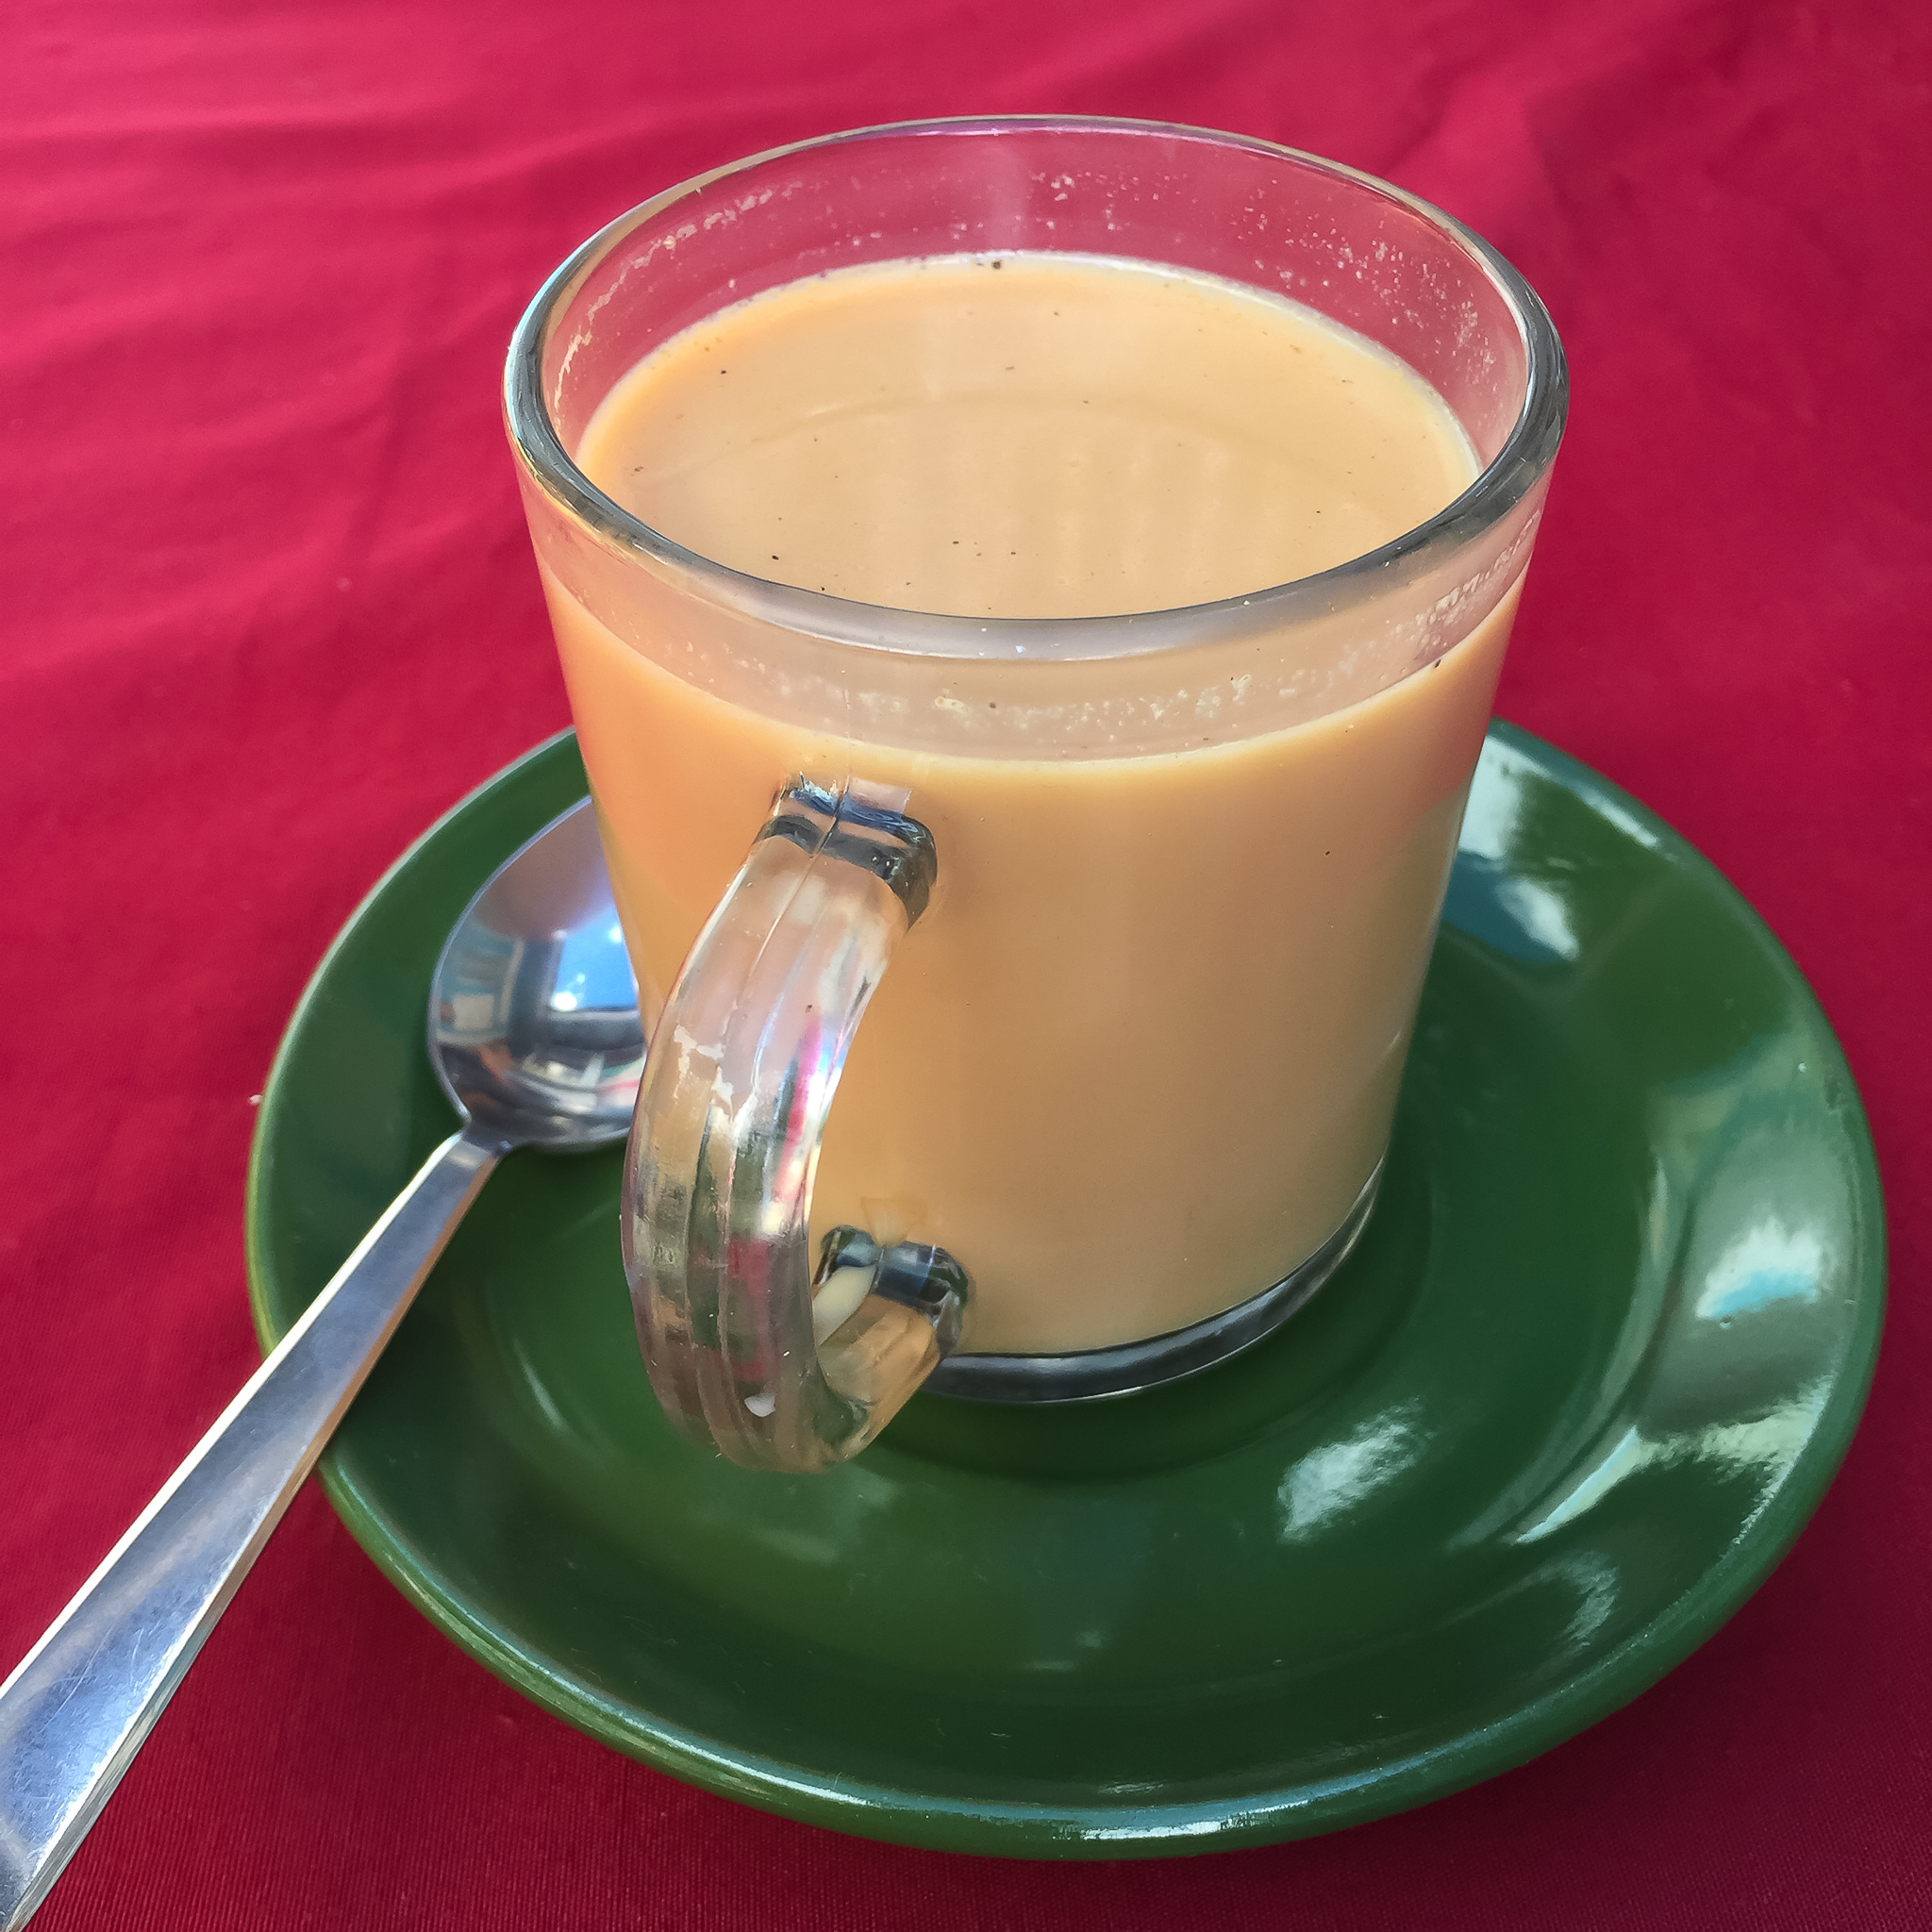 Masala Tea - Milk Tea infused with a mix of aromatic Indian spices. Sometimes the term Chai is also referred to this same drink~